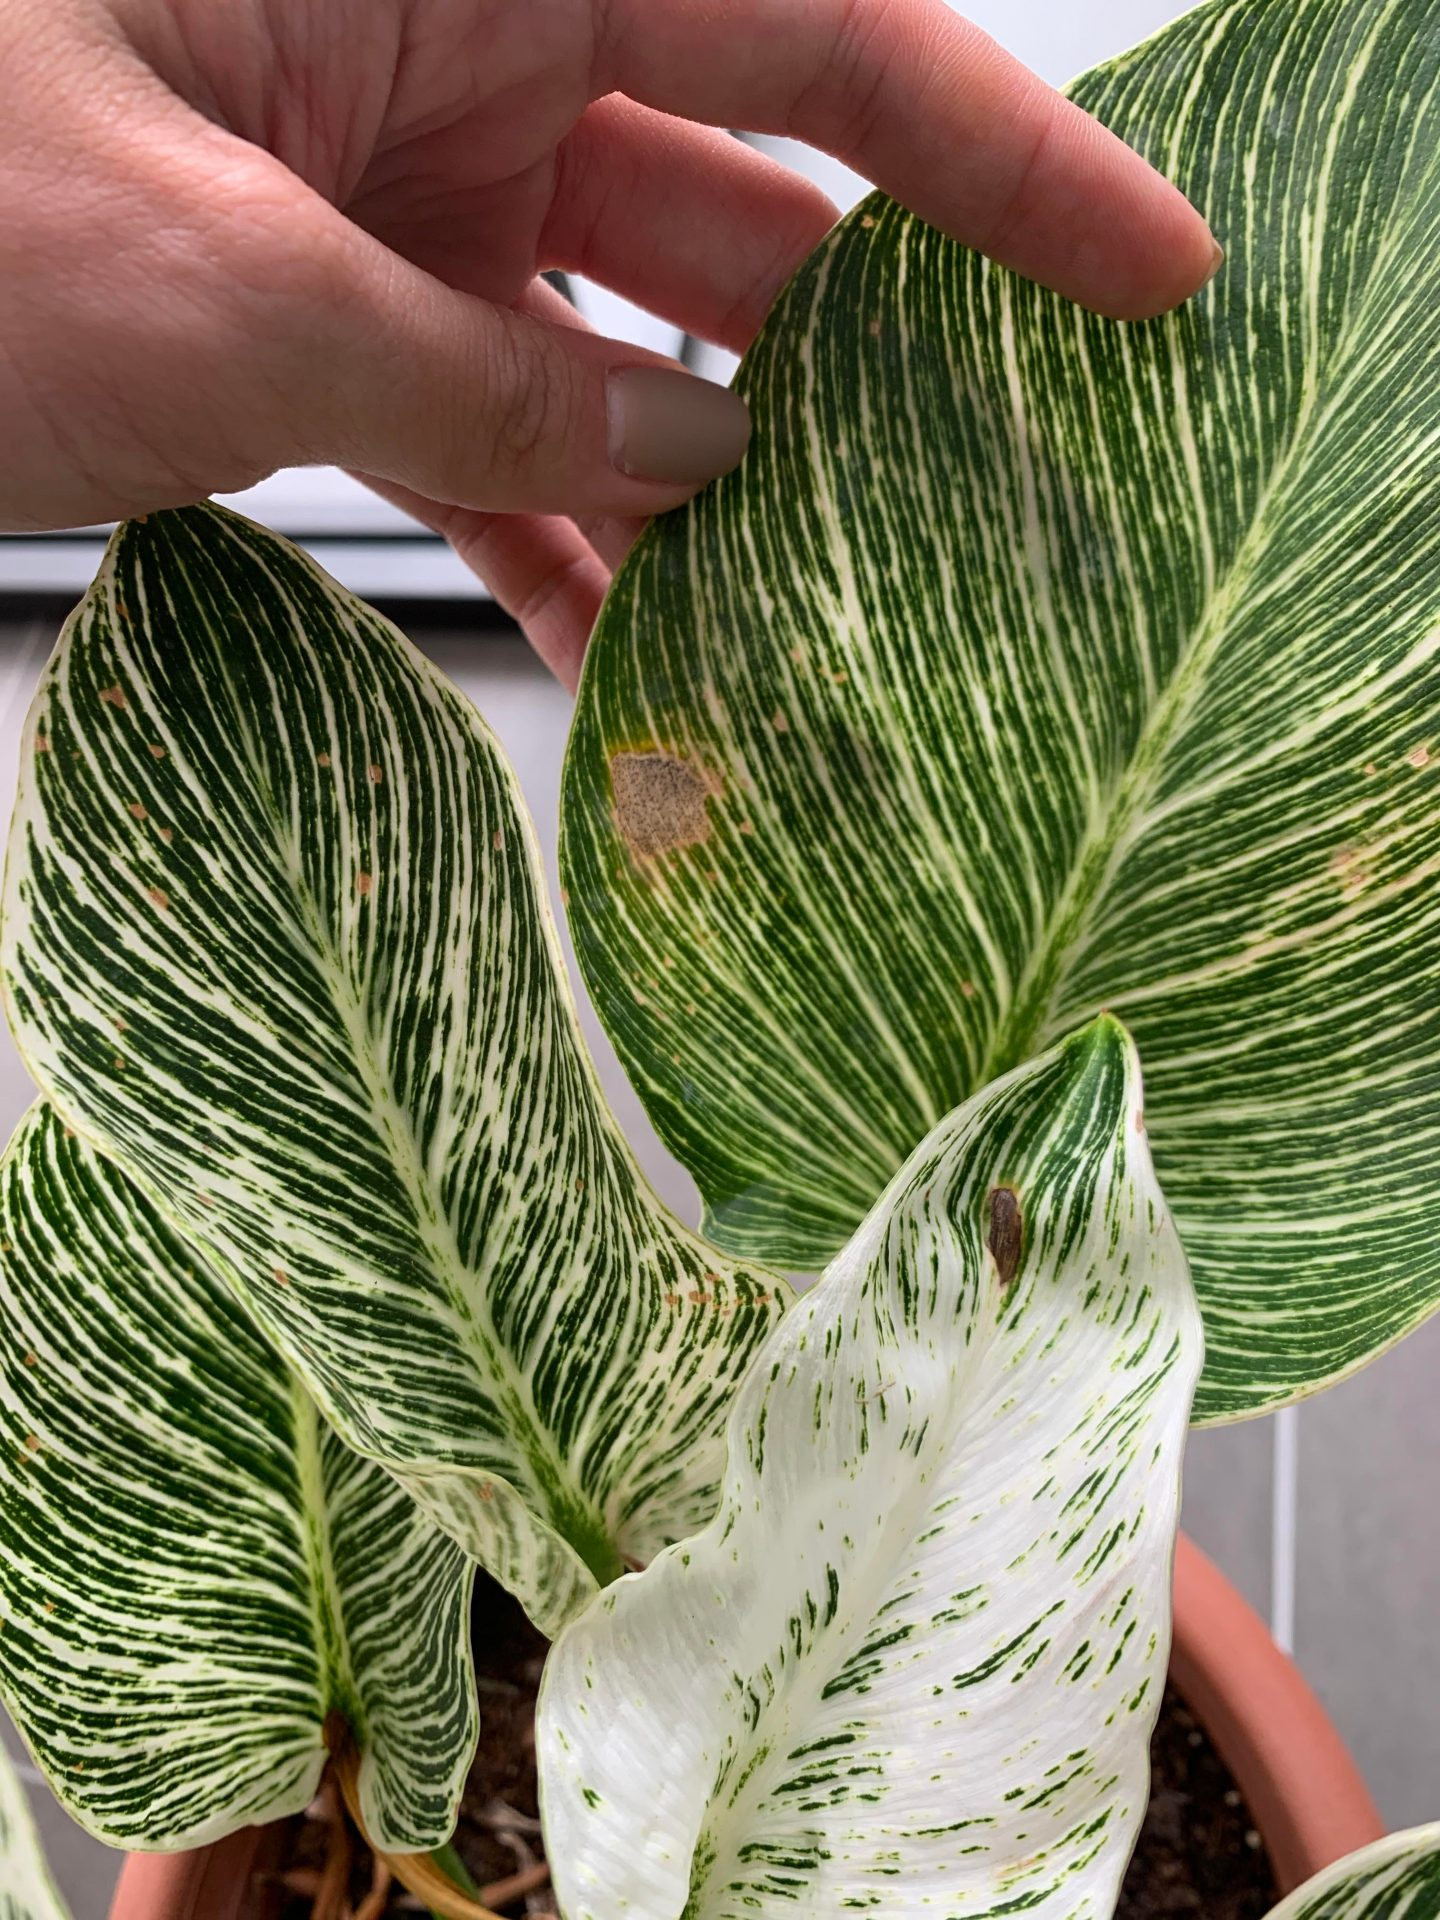 why philodendron birkin has a brown spot?